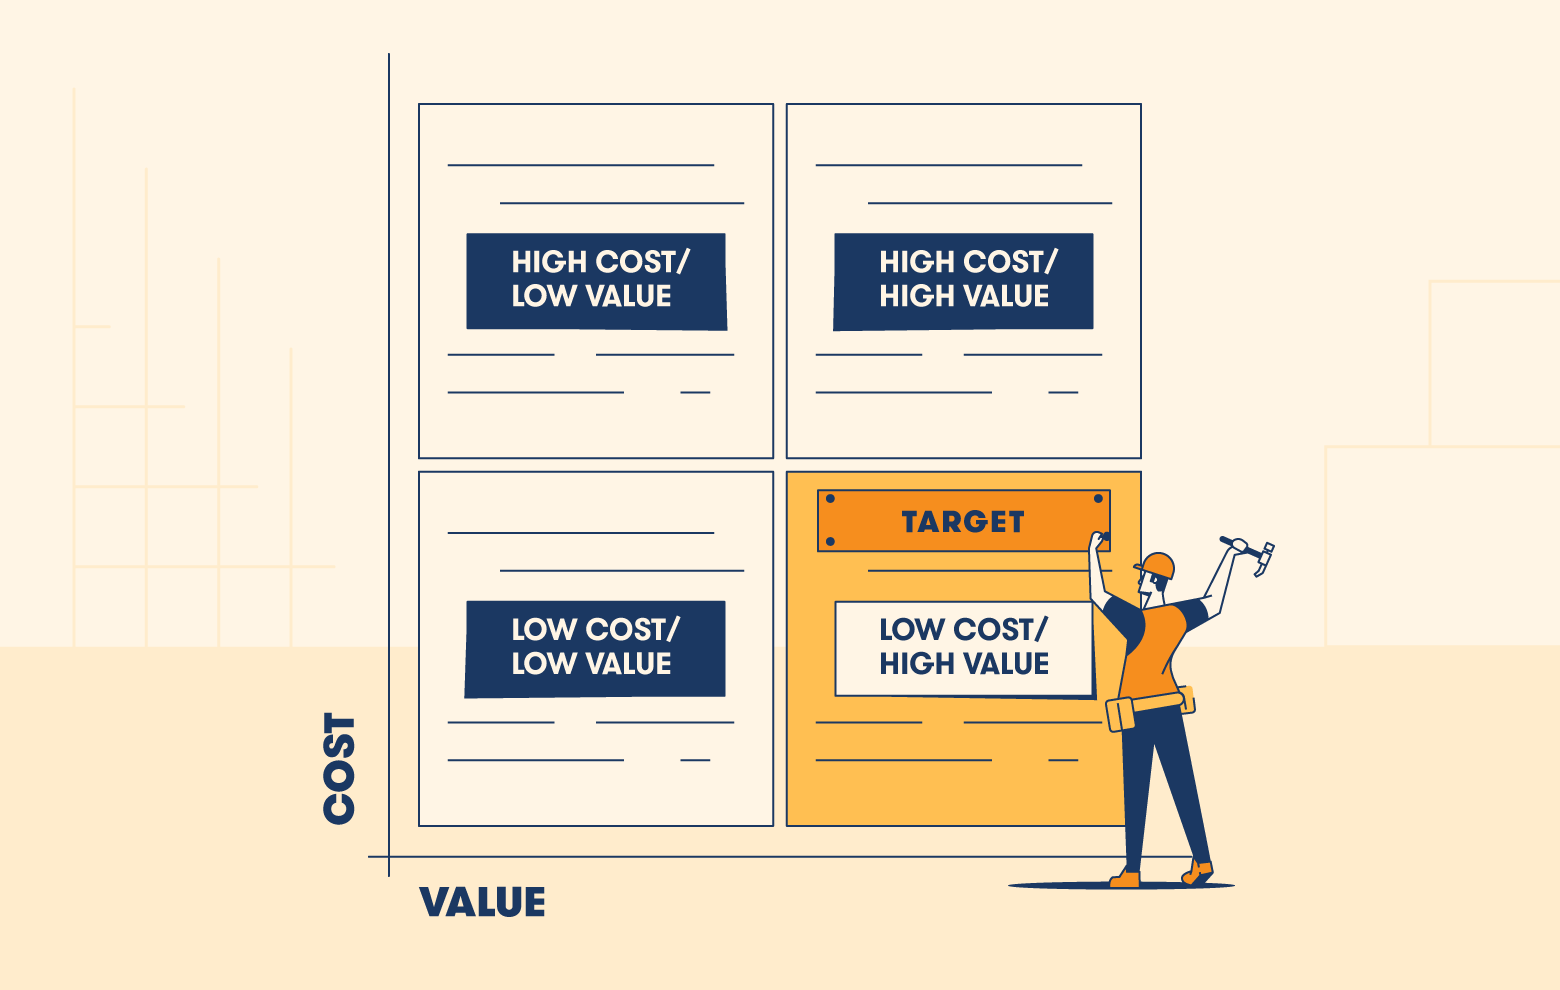 Value cost graph targeting low cost high value